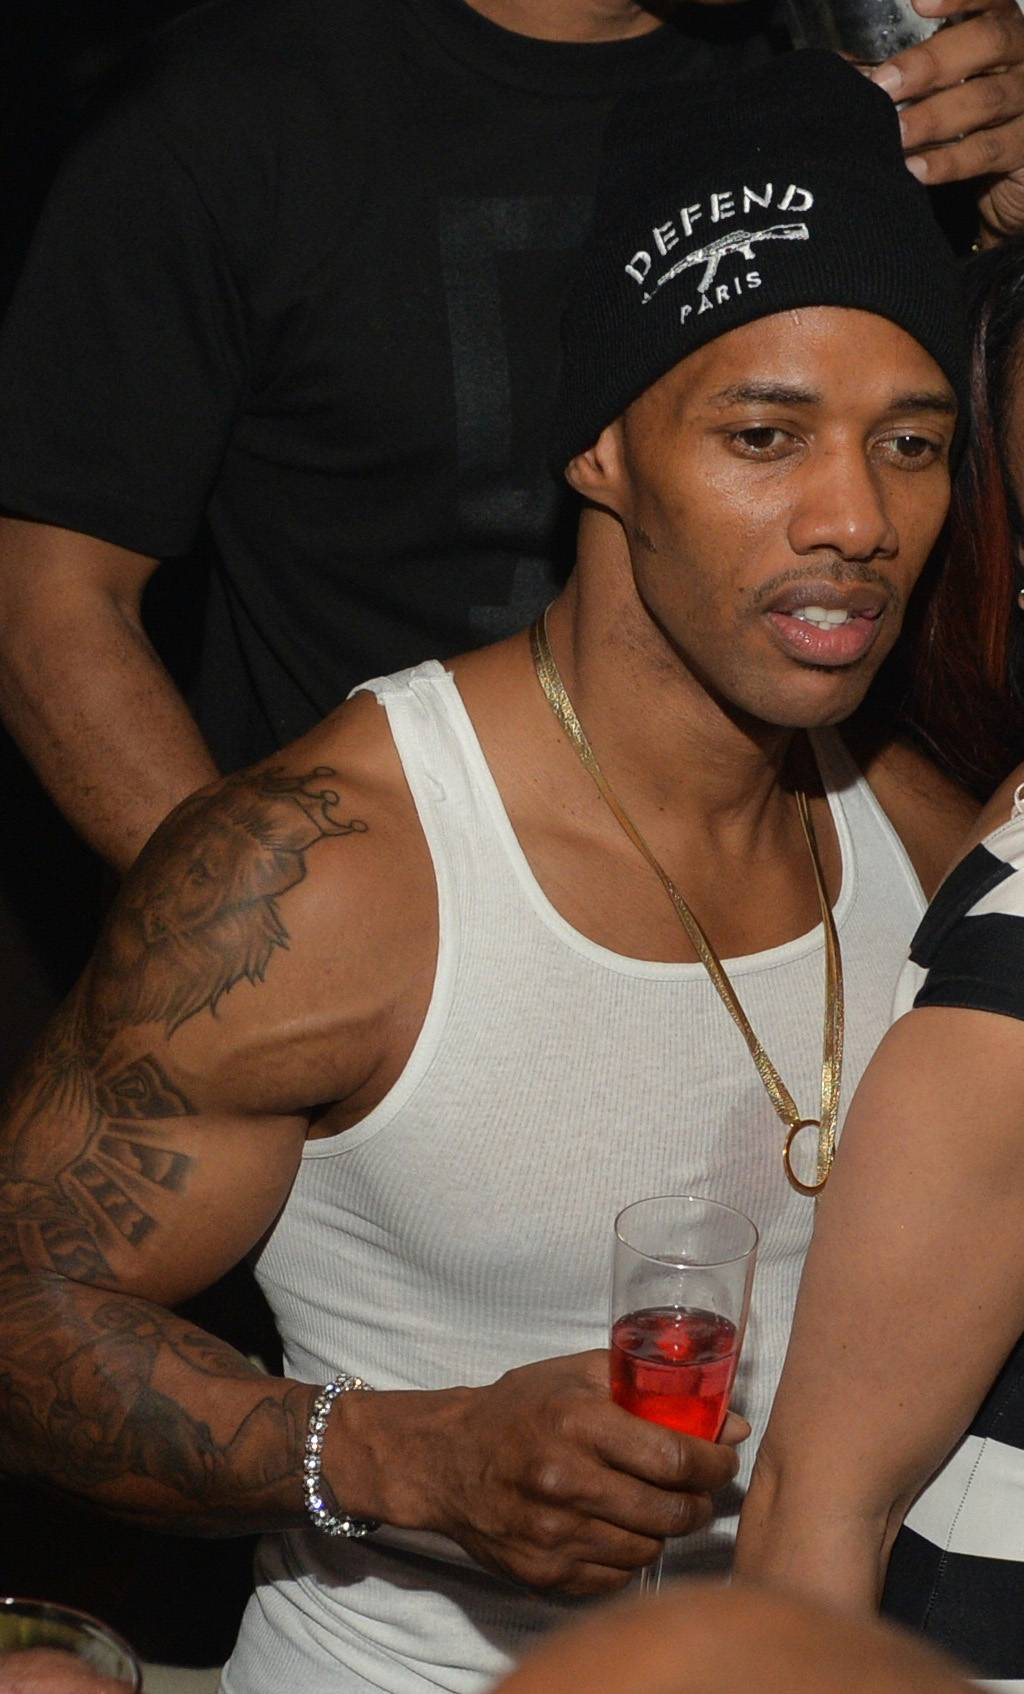 Nikko's Drama - Another day and more drama for a Love & Hip-Hop Atlanta cast member. Mimi's ex-boyfriend, Nikko Smith, was hit with a $1.1 million dollar lienafter losing a lawsuit accusing he and his wife of swindling their music business partners, according to reports. The hefty bill stems from 2008, when a music company named Supafly Entertainment filed a suit against Nikko and his wife, Margo Simms. The company claims they were working with Nikko and Simms, who were in a band called Test Drive, and fronted money for the band to record, produce and promote its music. The company says the band got offered a recording contract with Universal Music but Nikko and Simms began making shady business moves in an effort to cut Supafly out of the deal. The latter two's plan backfired because no deal was made but Supafly Entertainment wants them to come up off the dough th...